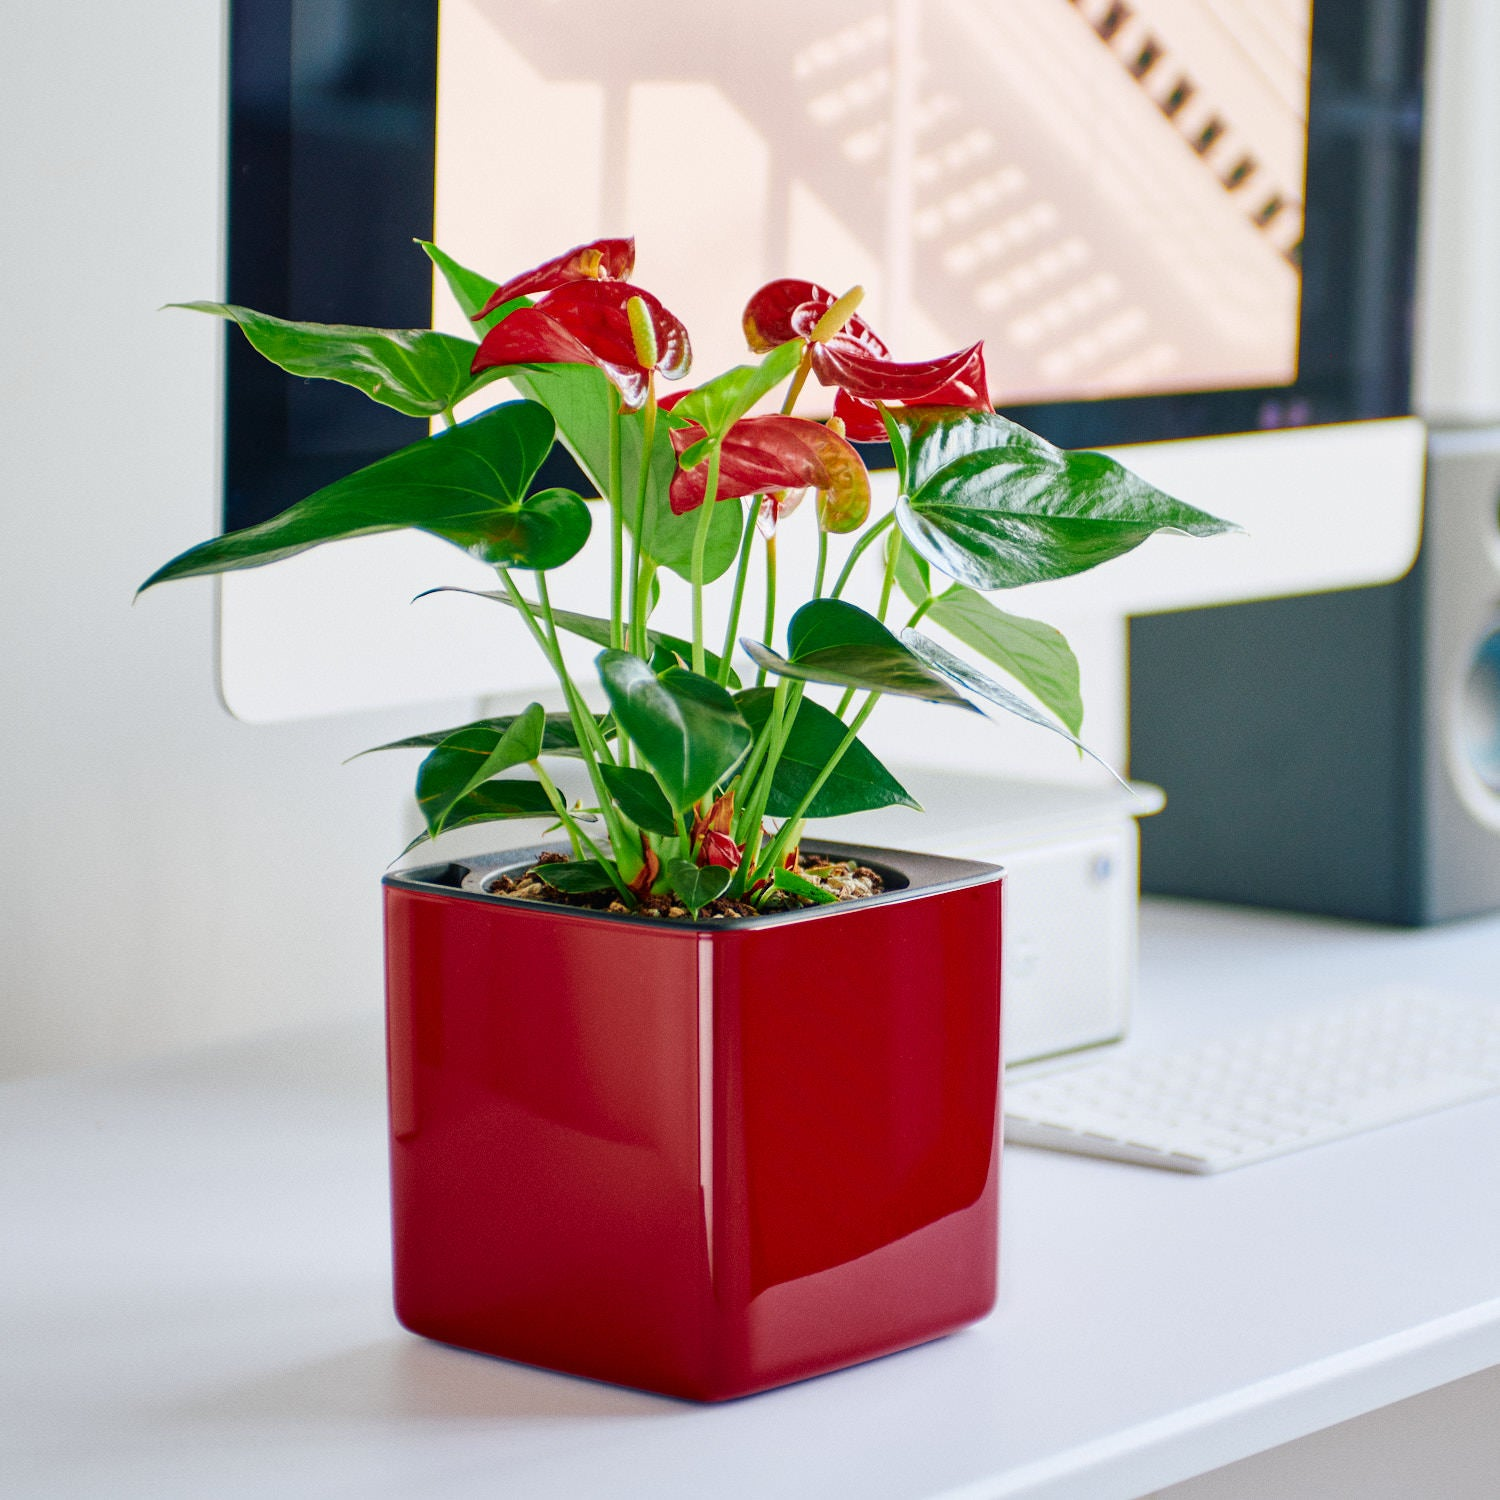 Anthurium In Lechuza Cube 14 Glossy Red Planter | My City Plants